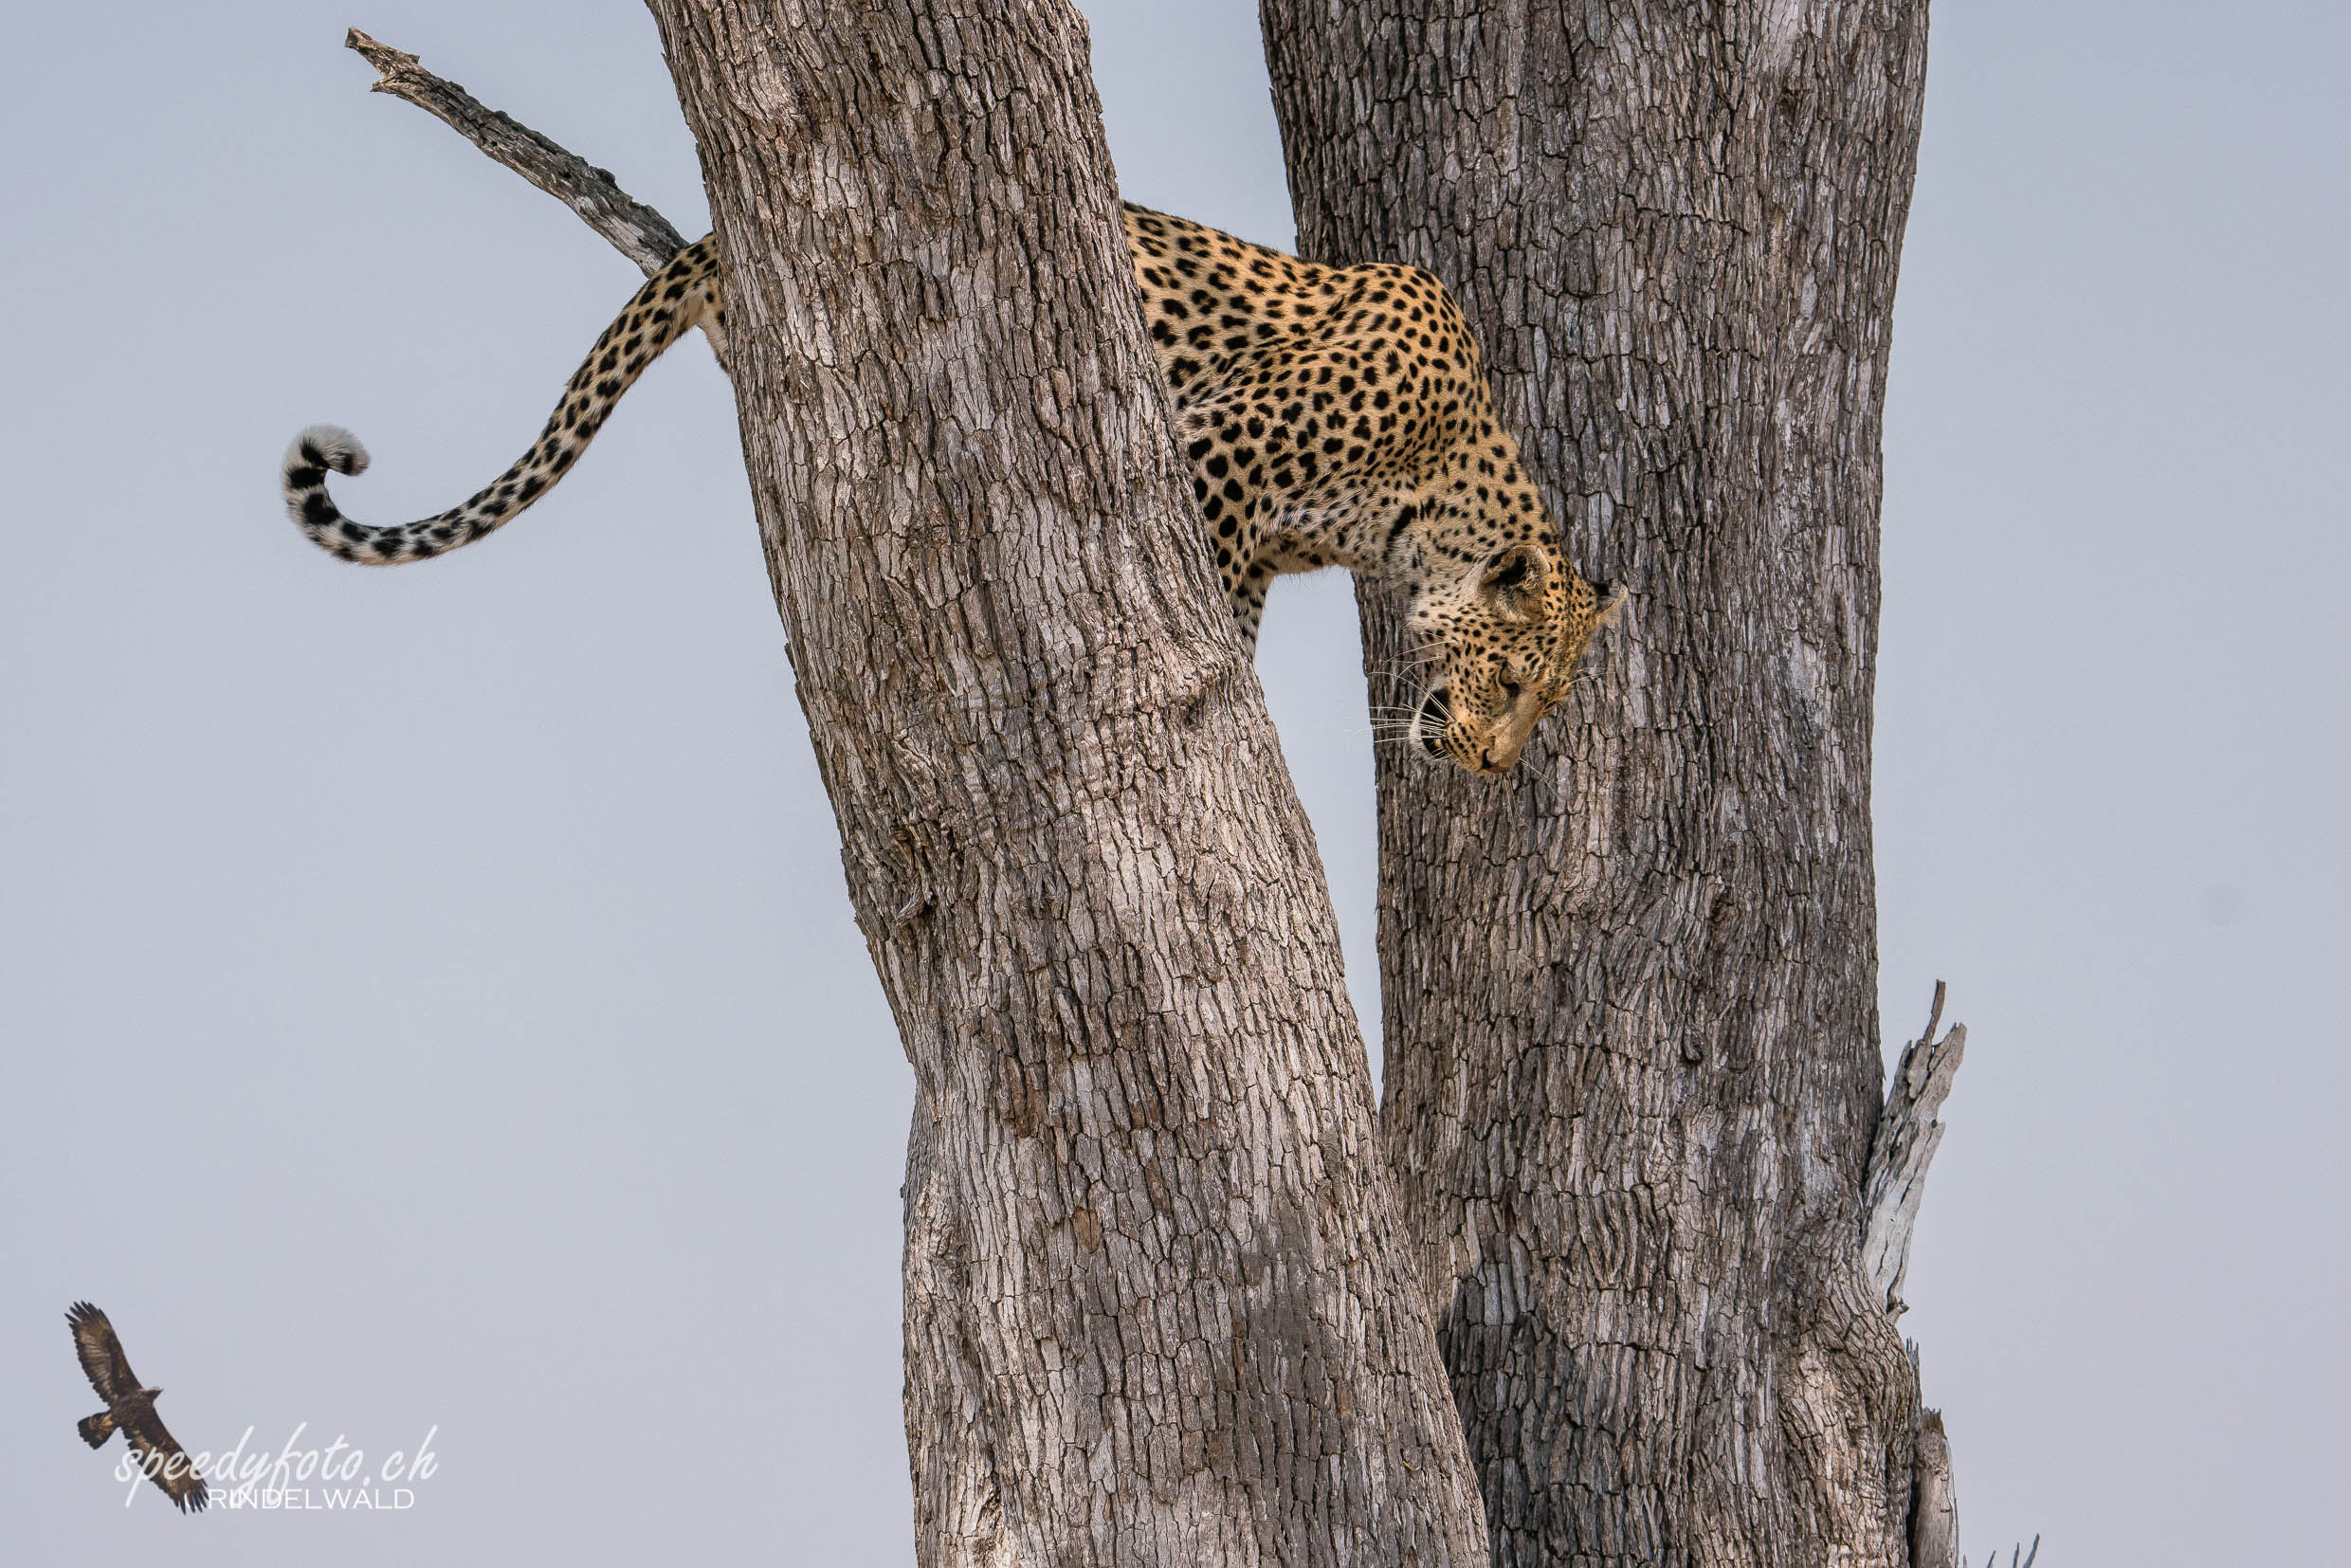 Leopard - up in the Tree